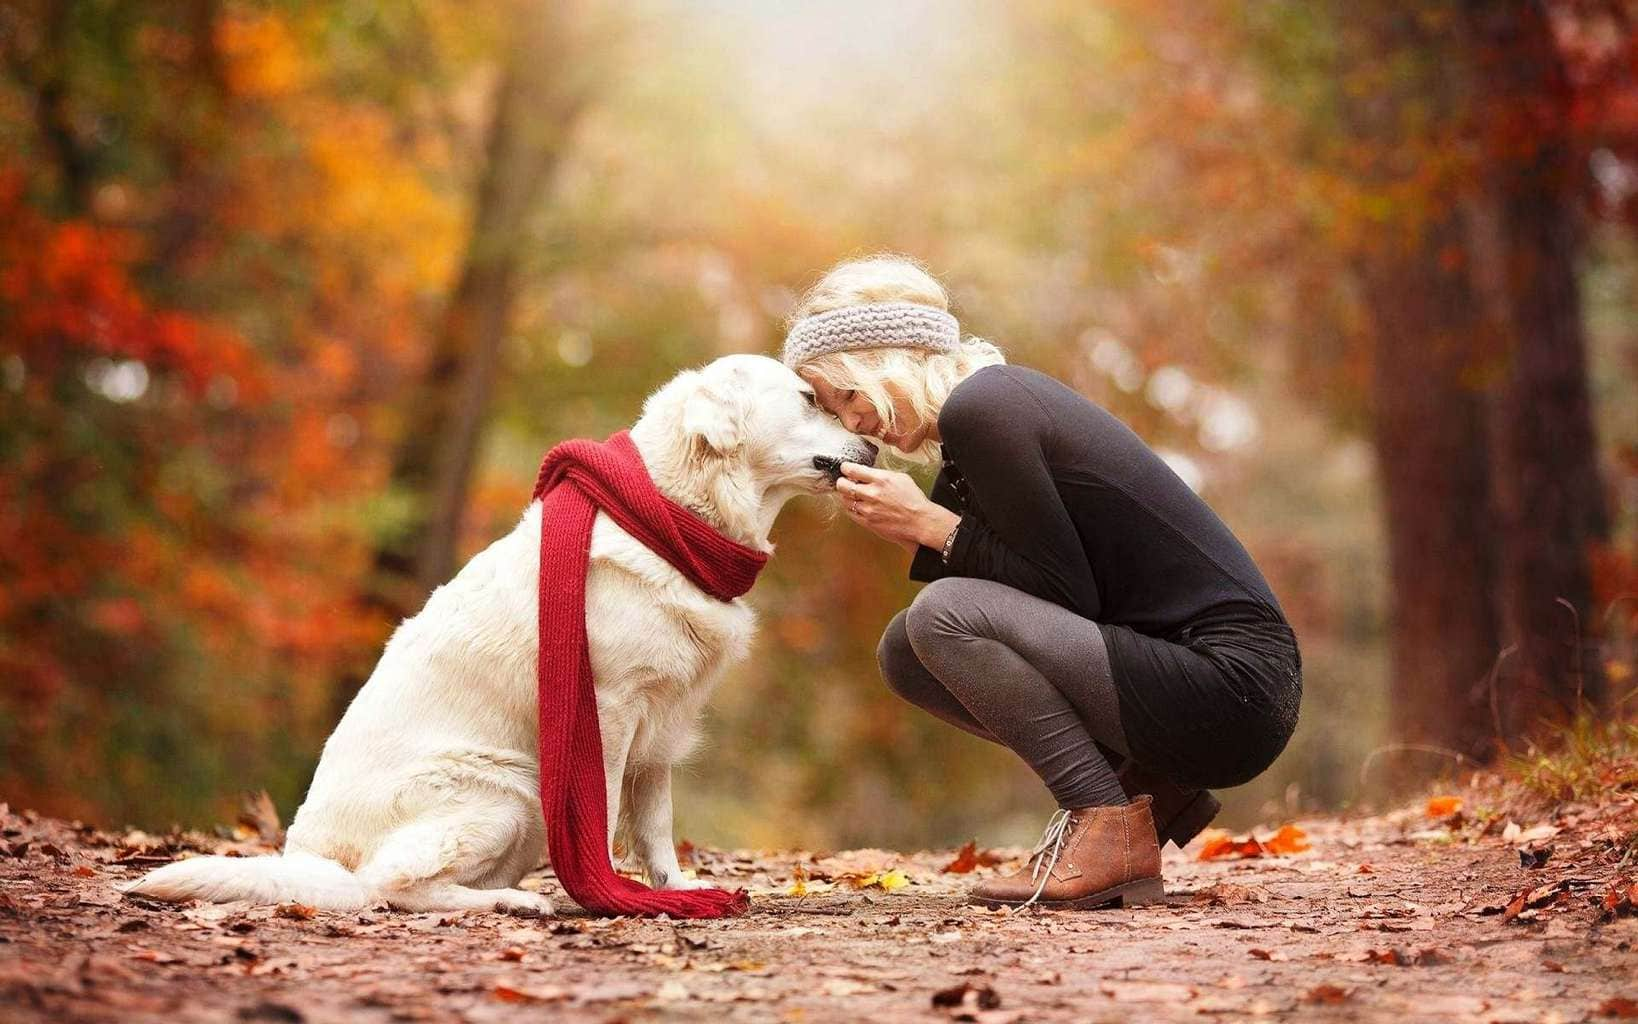 Animal & Human Friendship Images Wallpapers Wallpapers